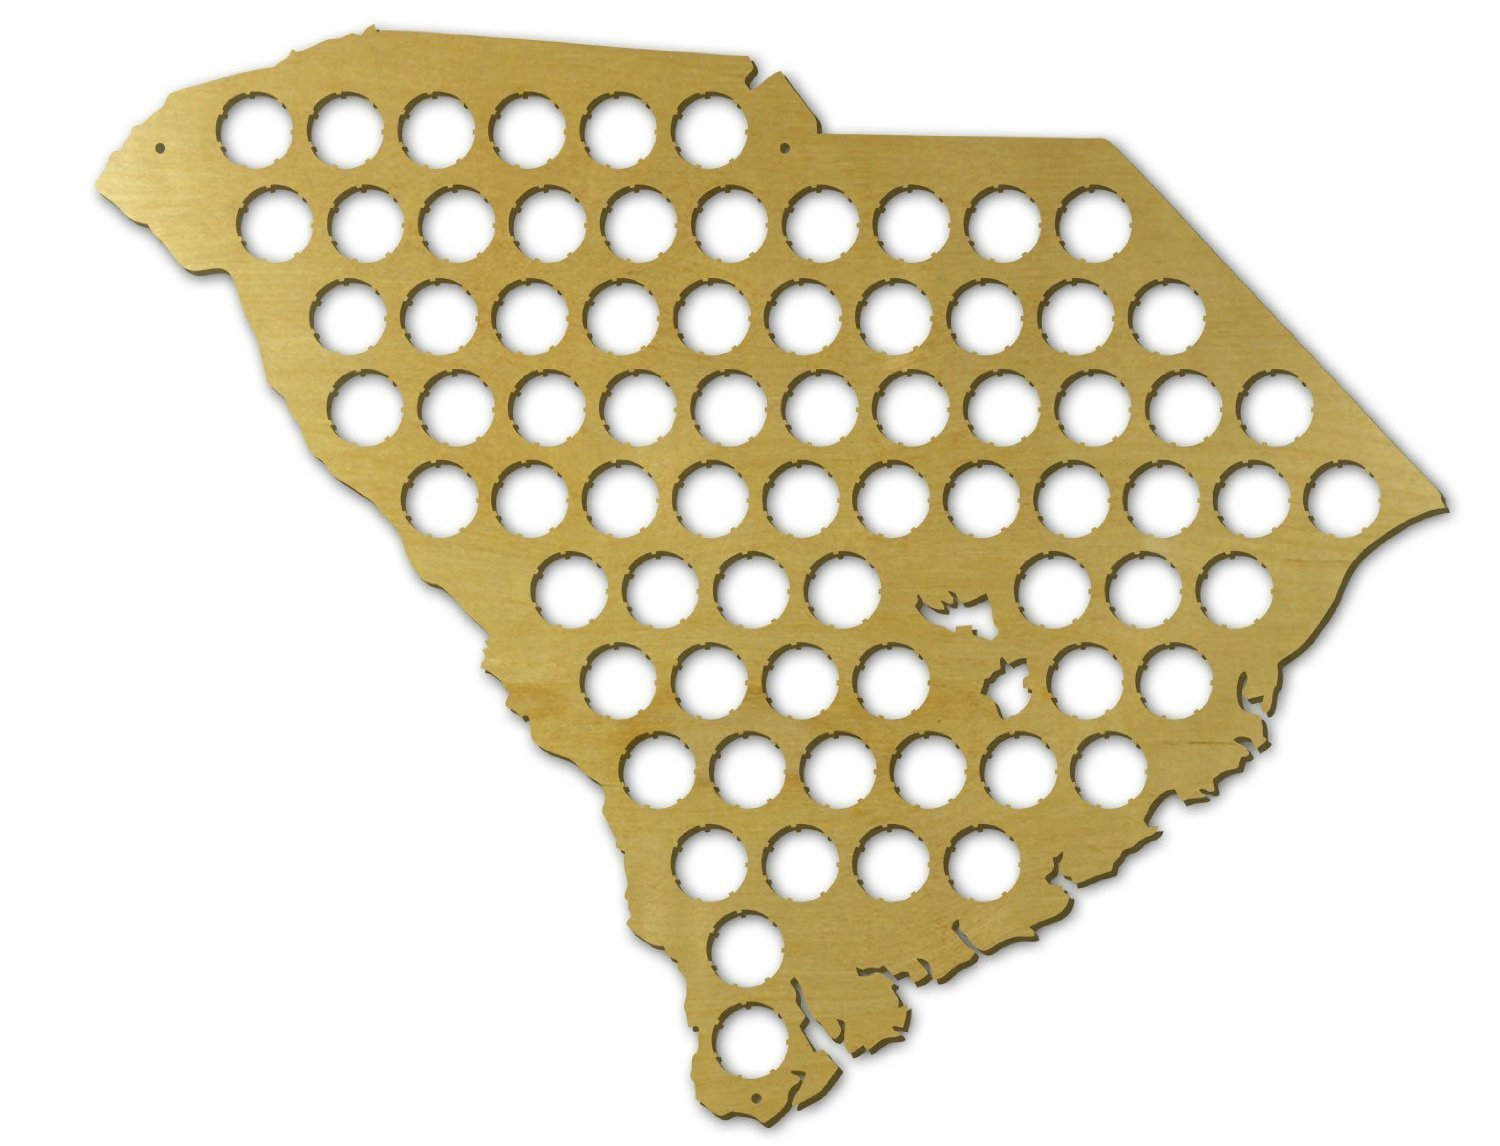 Amazon.com: Beer Cap Trap South Carolina Beer Cap Map Wall Art, Tan ...